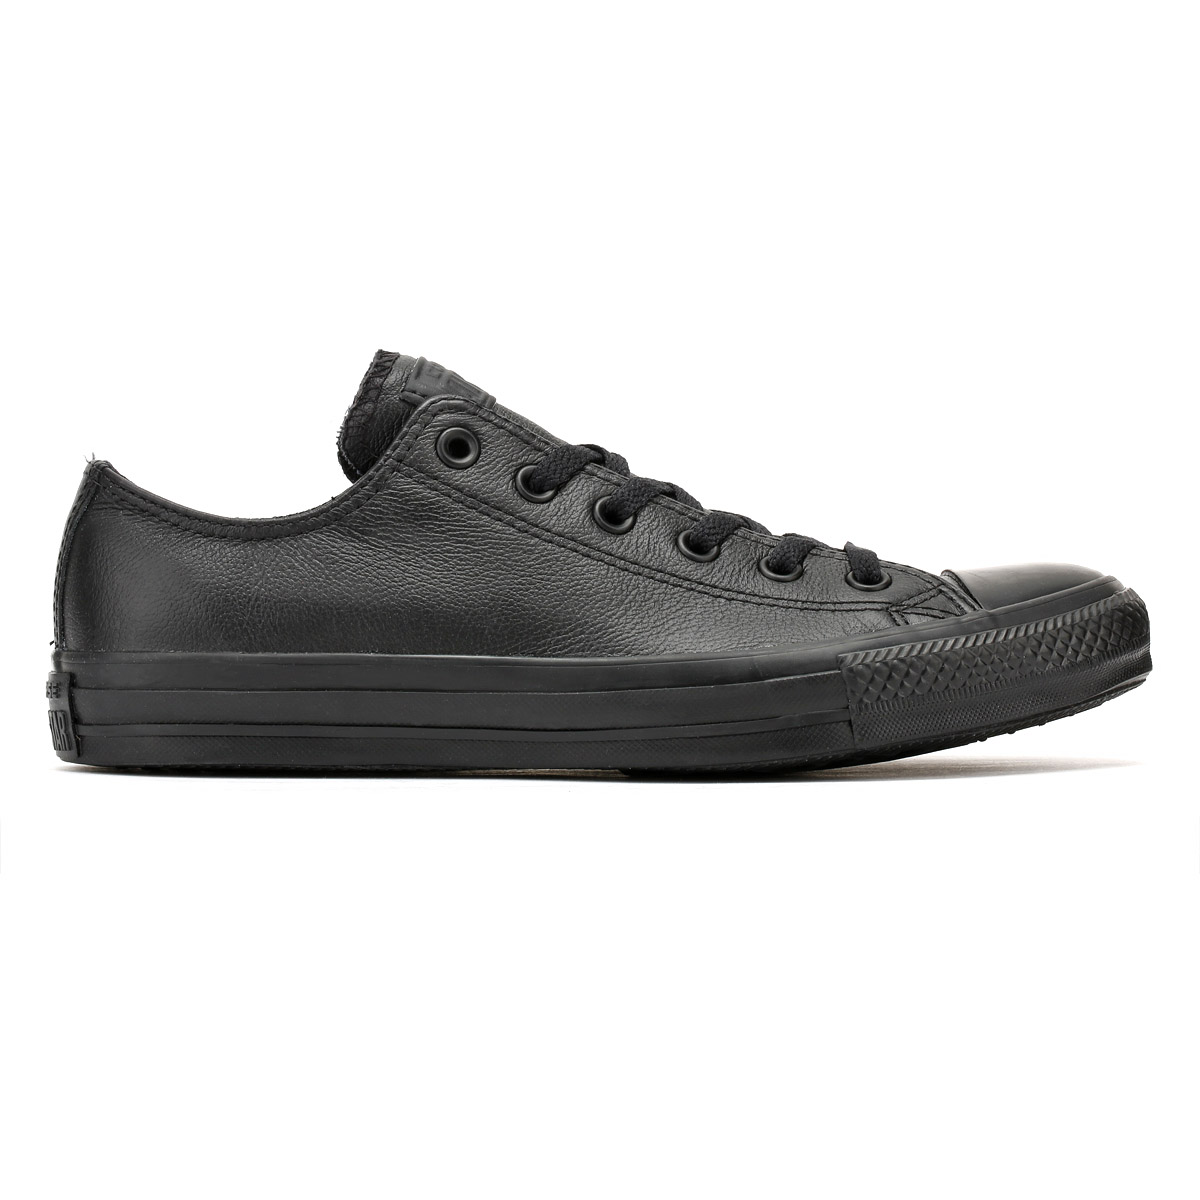 ae6a36d773a Converse Unisex Black All Star OX Leather Trainers Mens Womens Lace Up  Sneakers